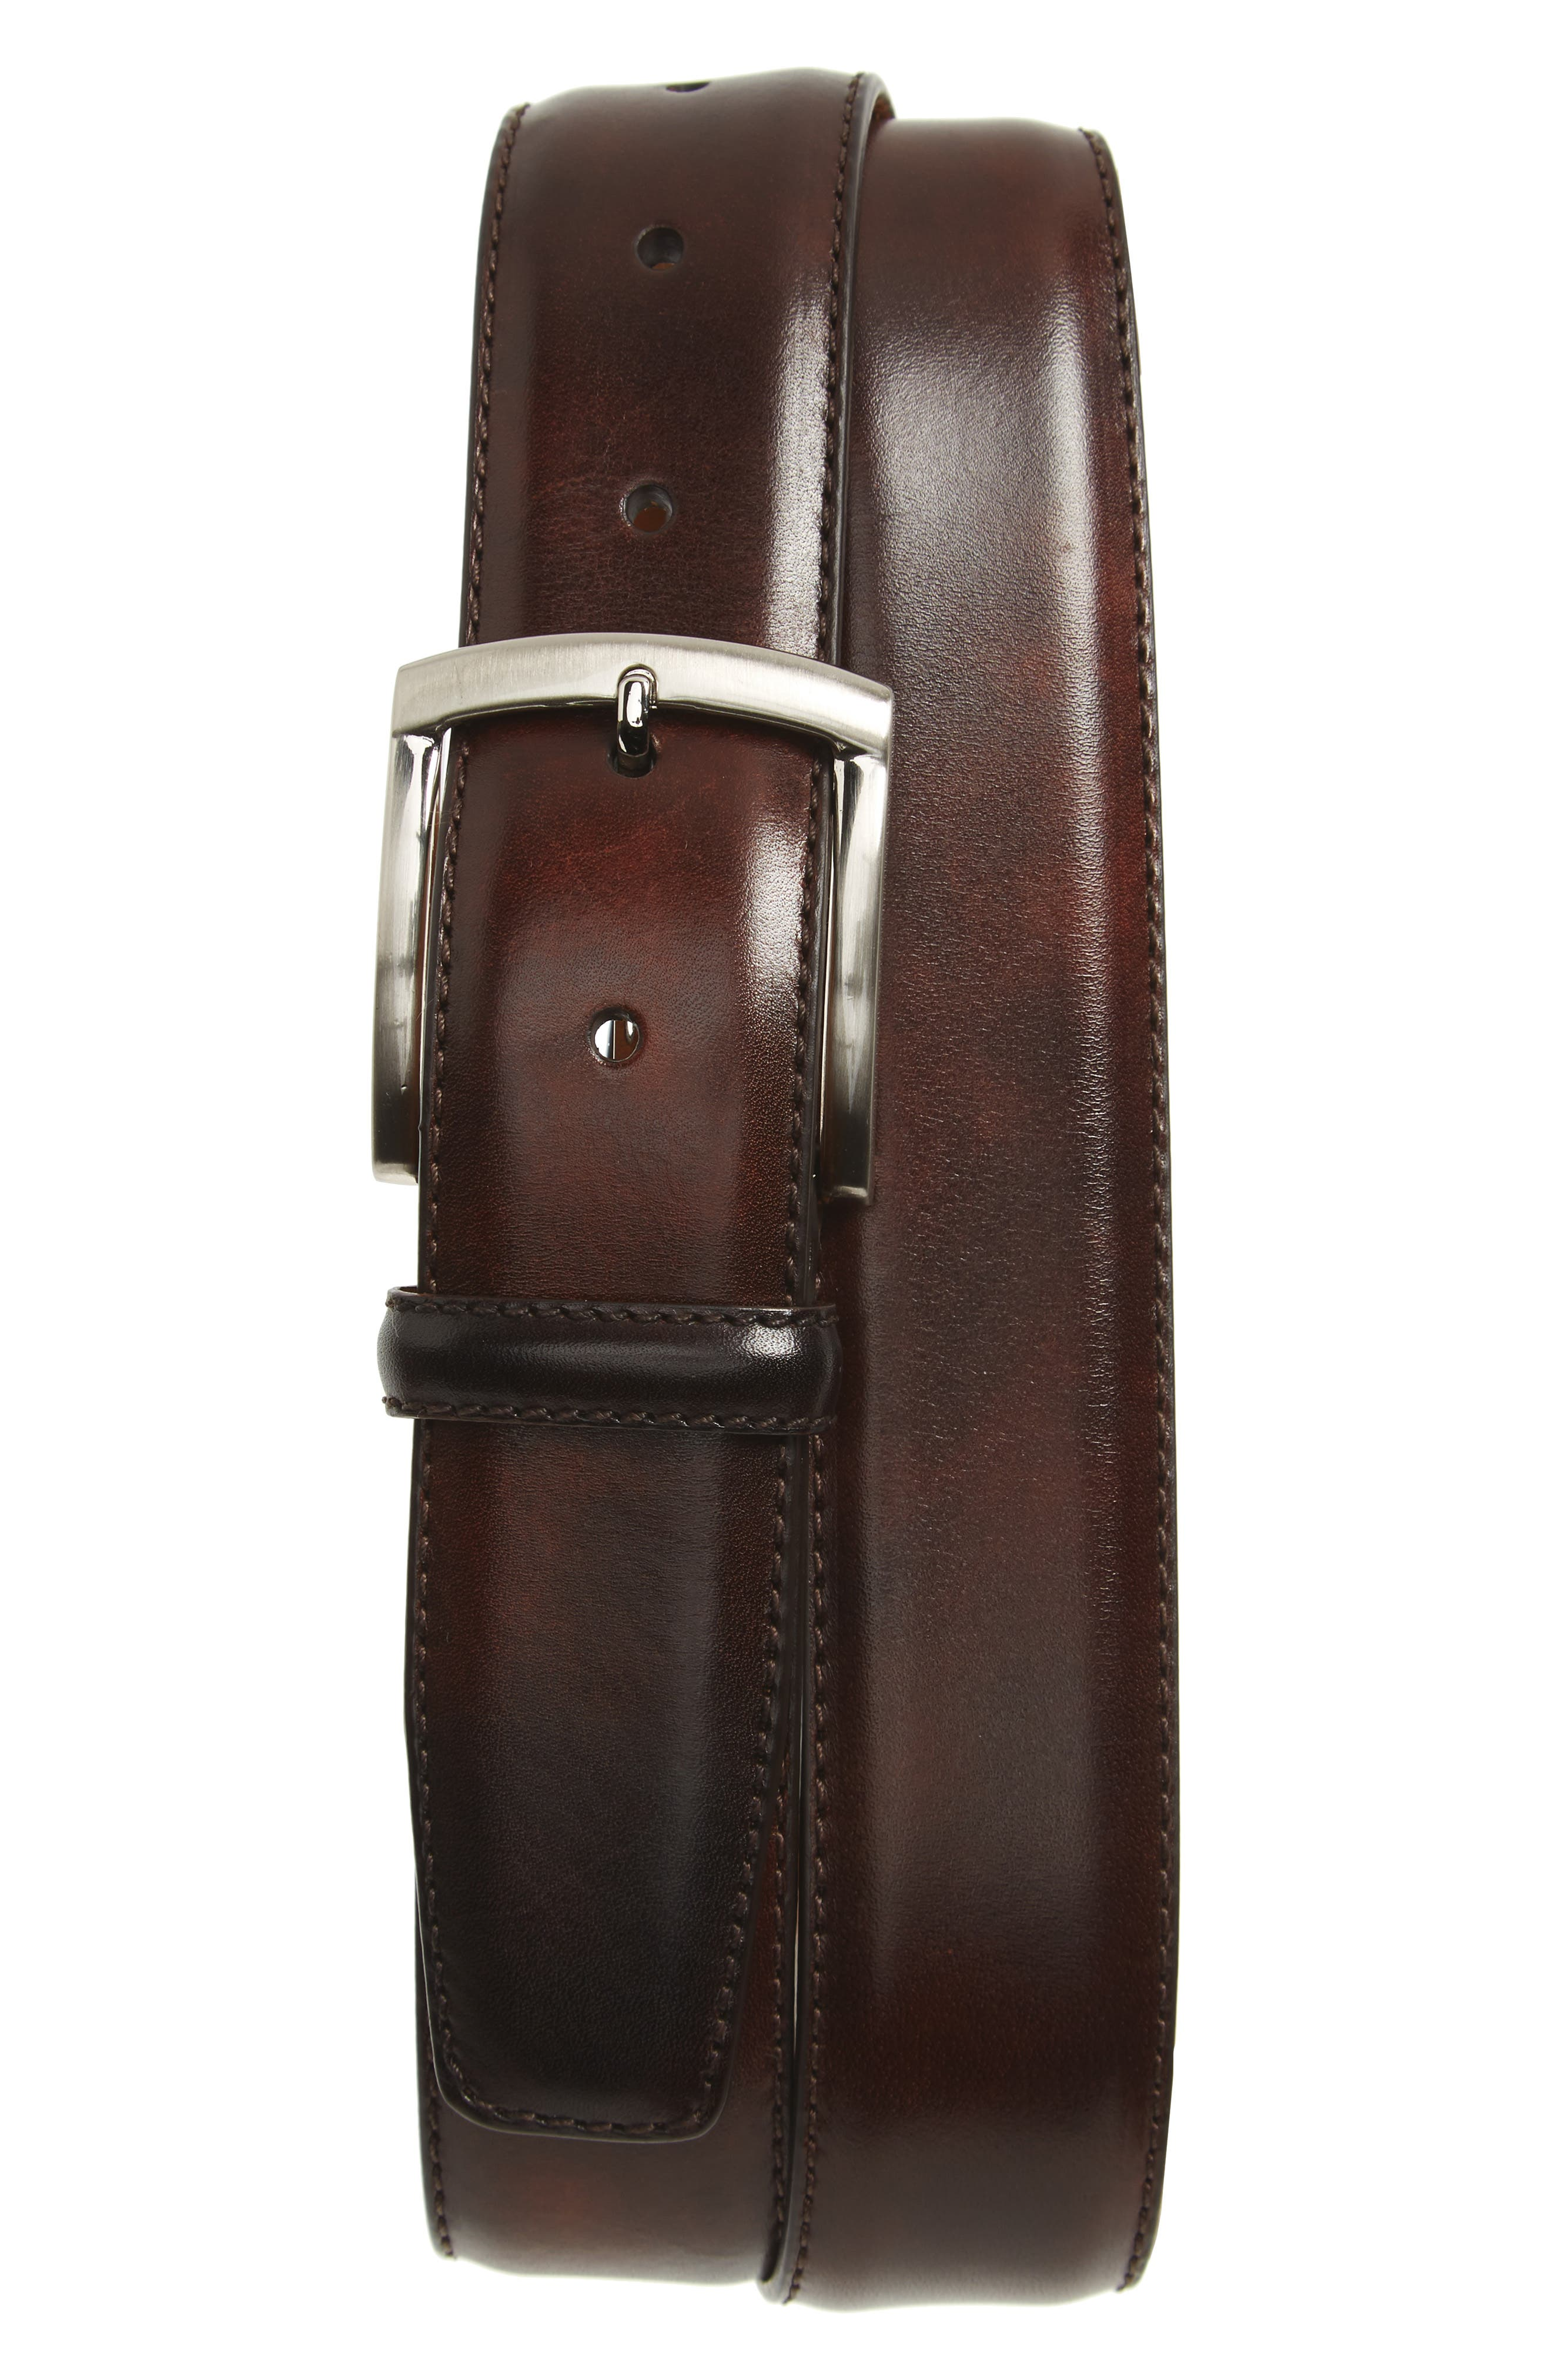 An elegant, richly hued belt is crafted in Spain from premium calfskin leather and secured with a brushed silvertone buckle for a modern touch. Style Name: Magnanni Tanner Leather Belt. Style Number: 5368199. Available in stores.